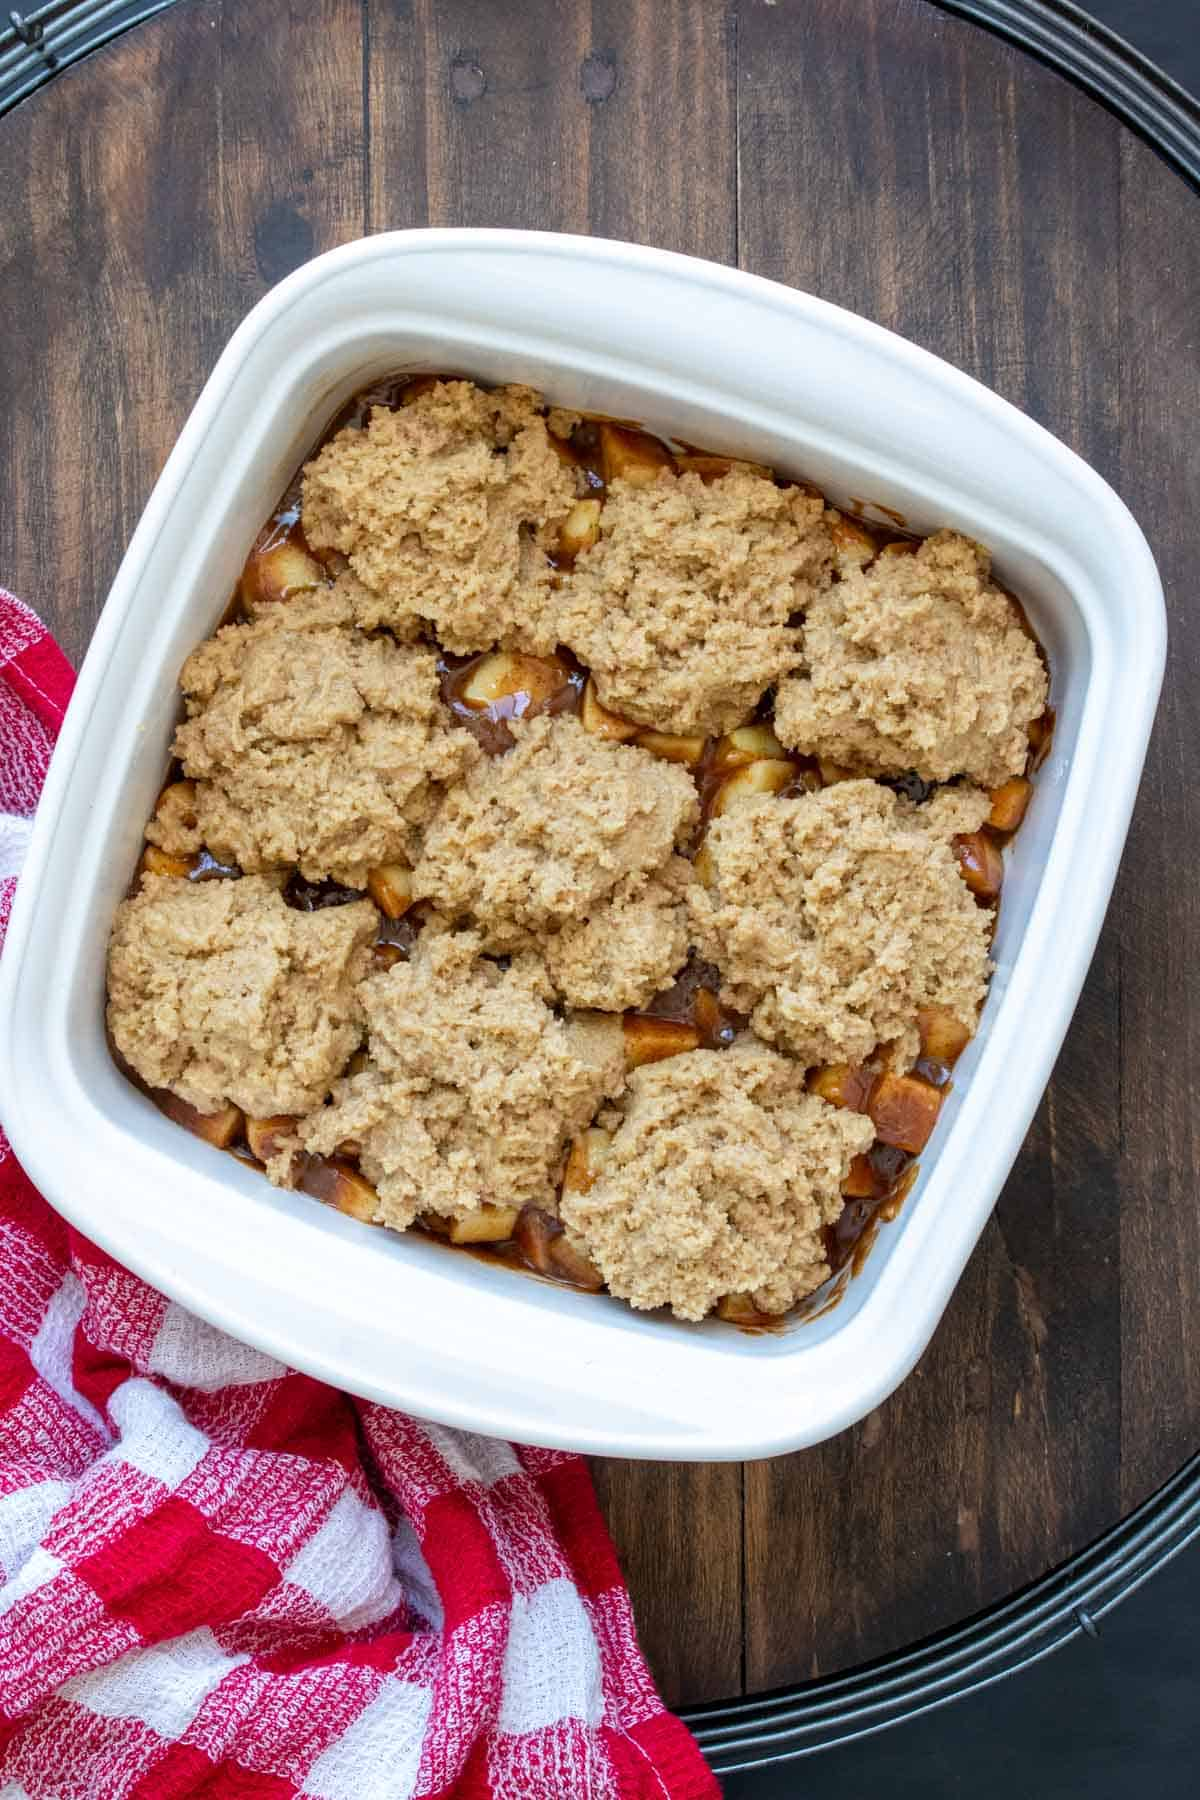 Square white baking dish with raw apple cobbler inside